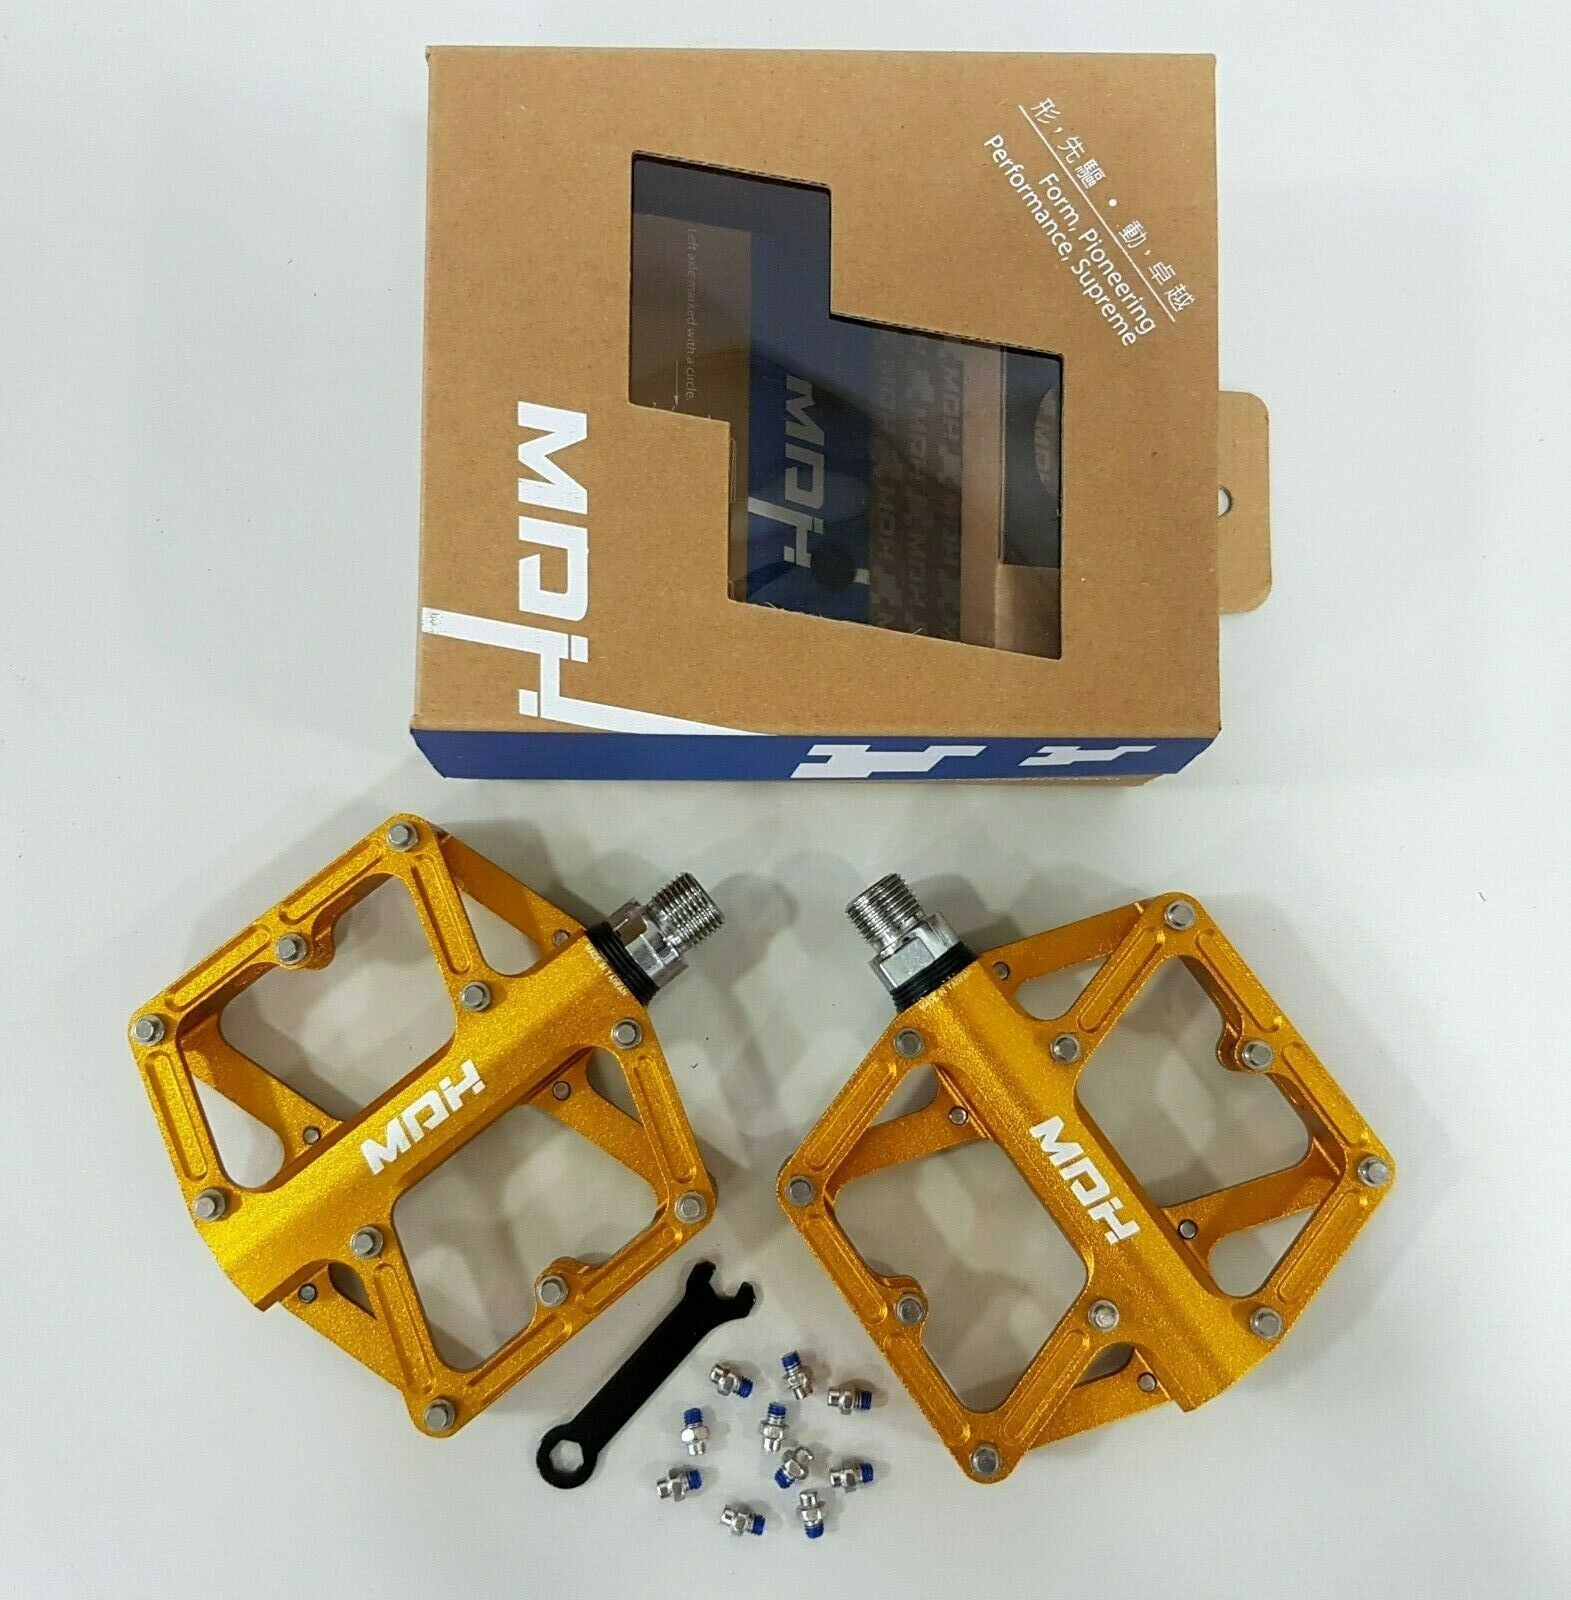 MDH Offroad PXC03 101.5x100x25.5mm 367g Aluminum CrMo Bicycle Pedal oro